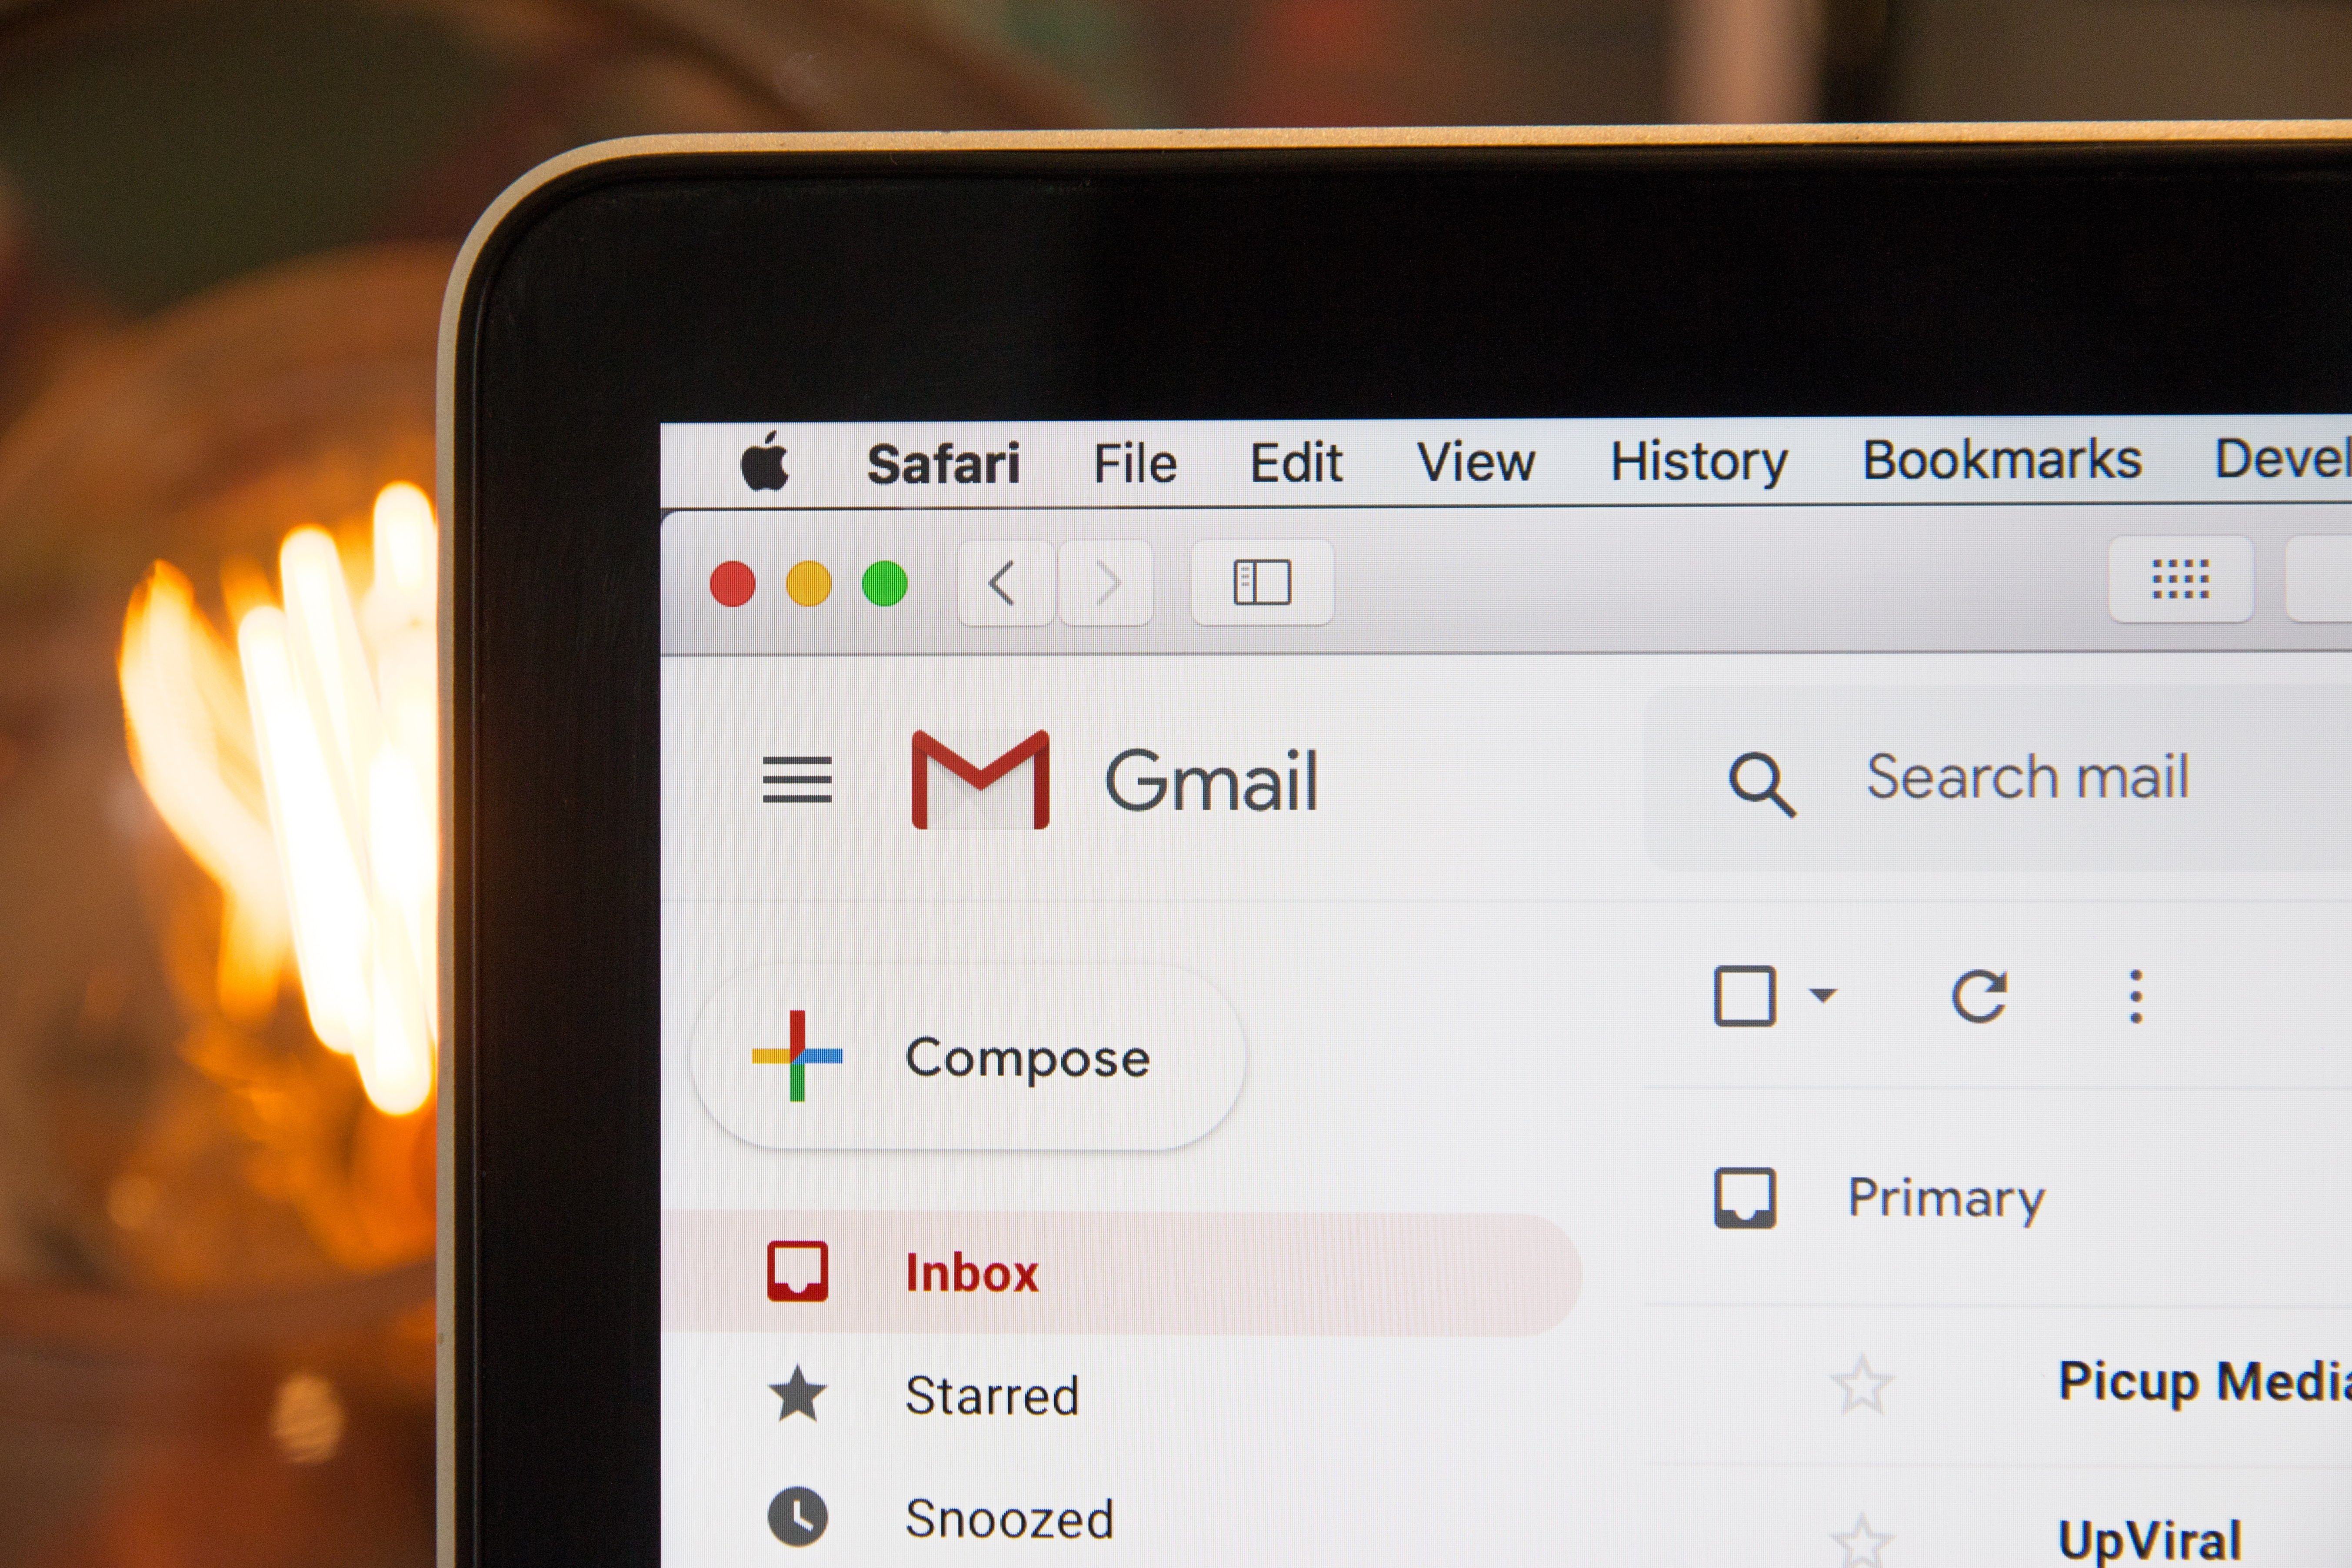 To Gmail or Not to Gmail